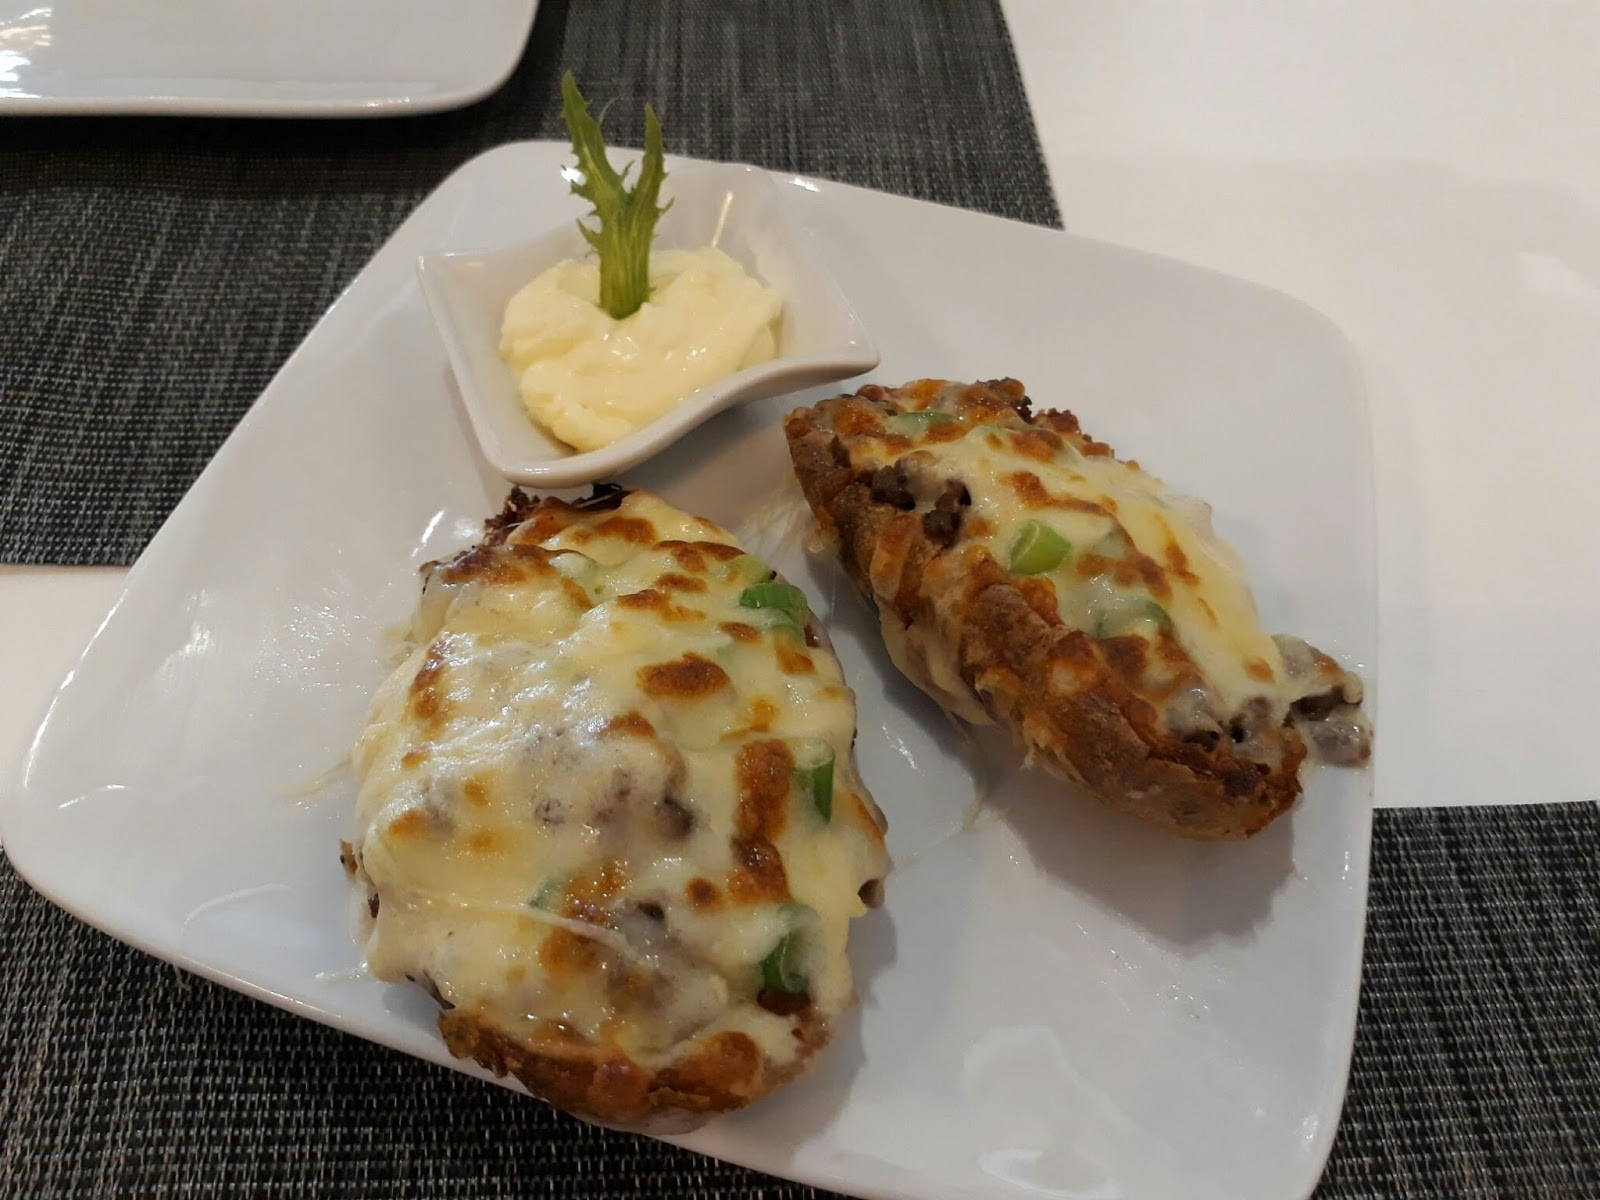 We had the Potato Skins as our starter Fully loaded with minced beef and cheese it was more filling than skin not that we minded